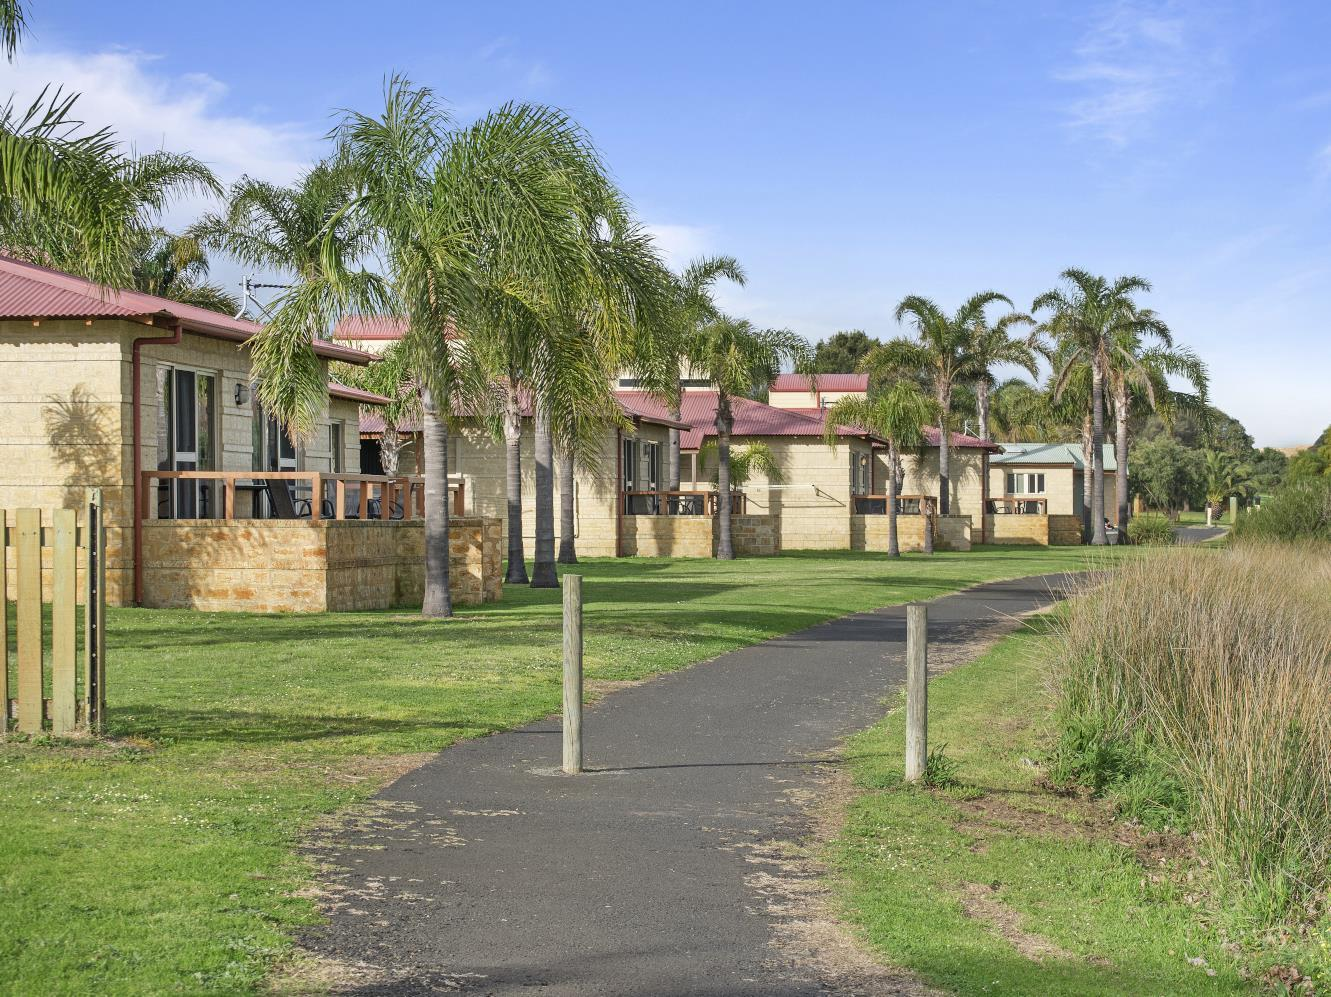 Discovery Parks - Bunbury Foreshore in Australia - Room